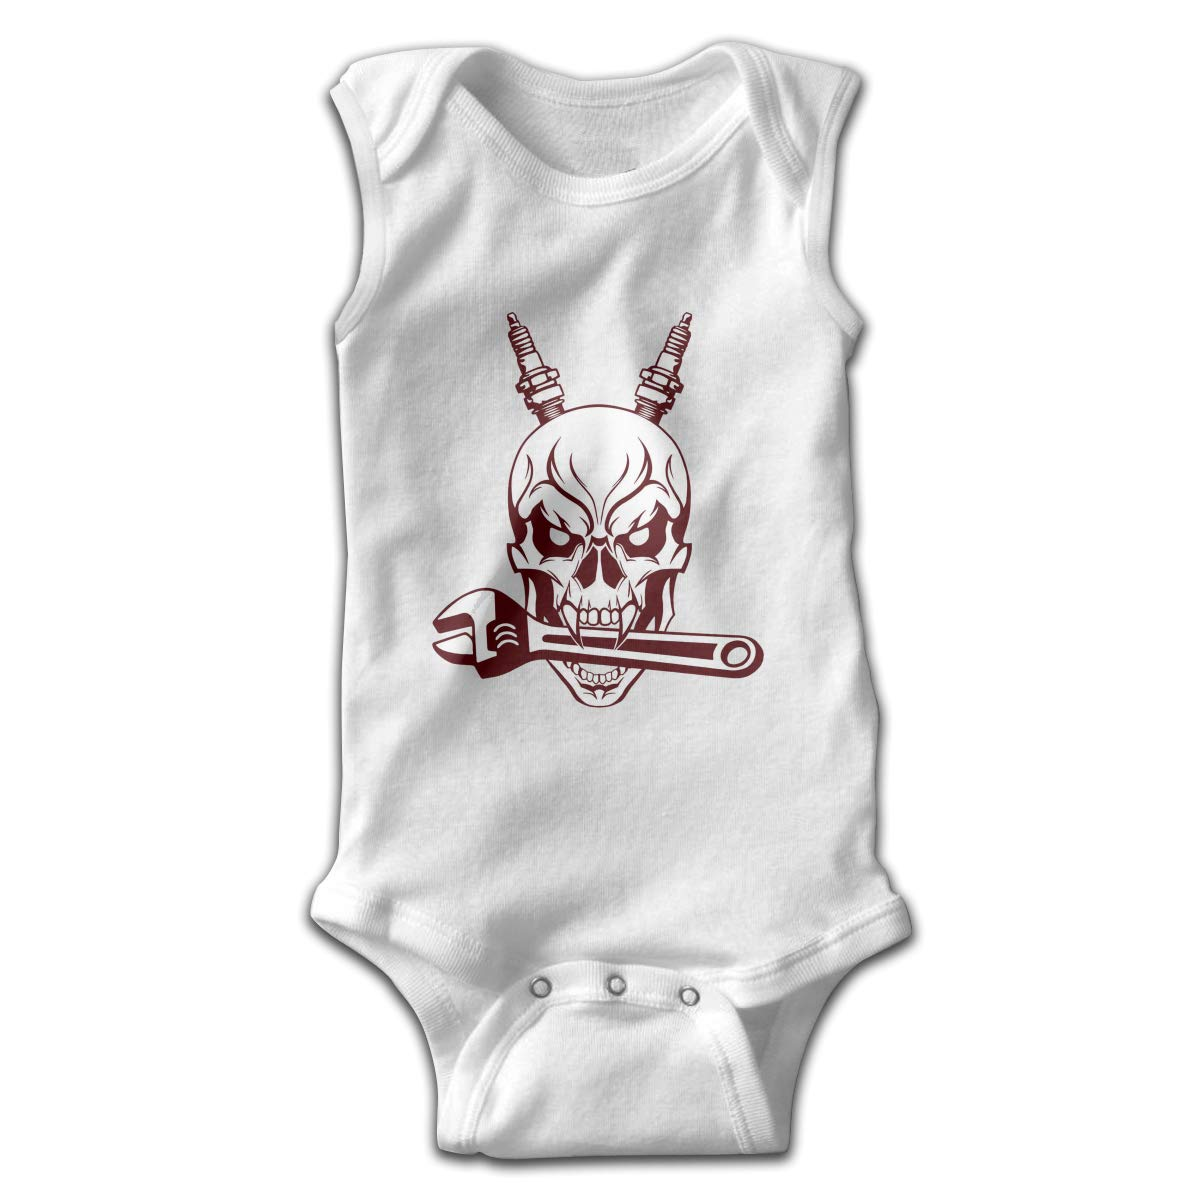 Efbj Toddler Baby Girls Rompers Sleeveless Cotton Onesie,Skull Tools Decal Outfit Summer Pajamas